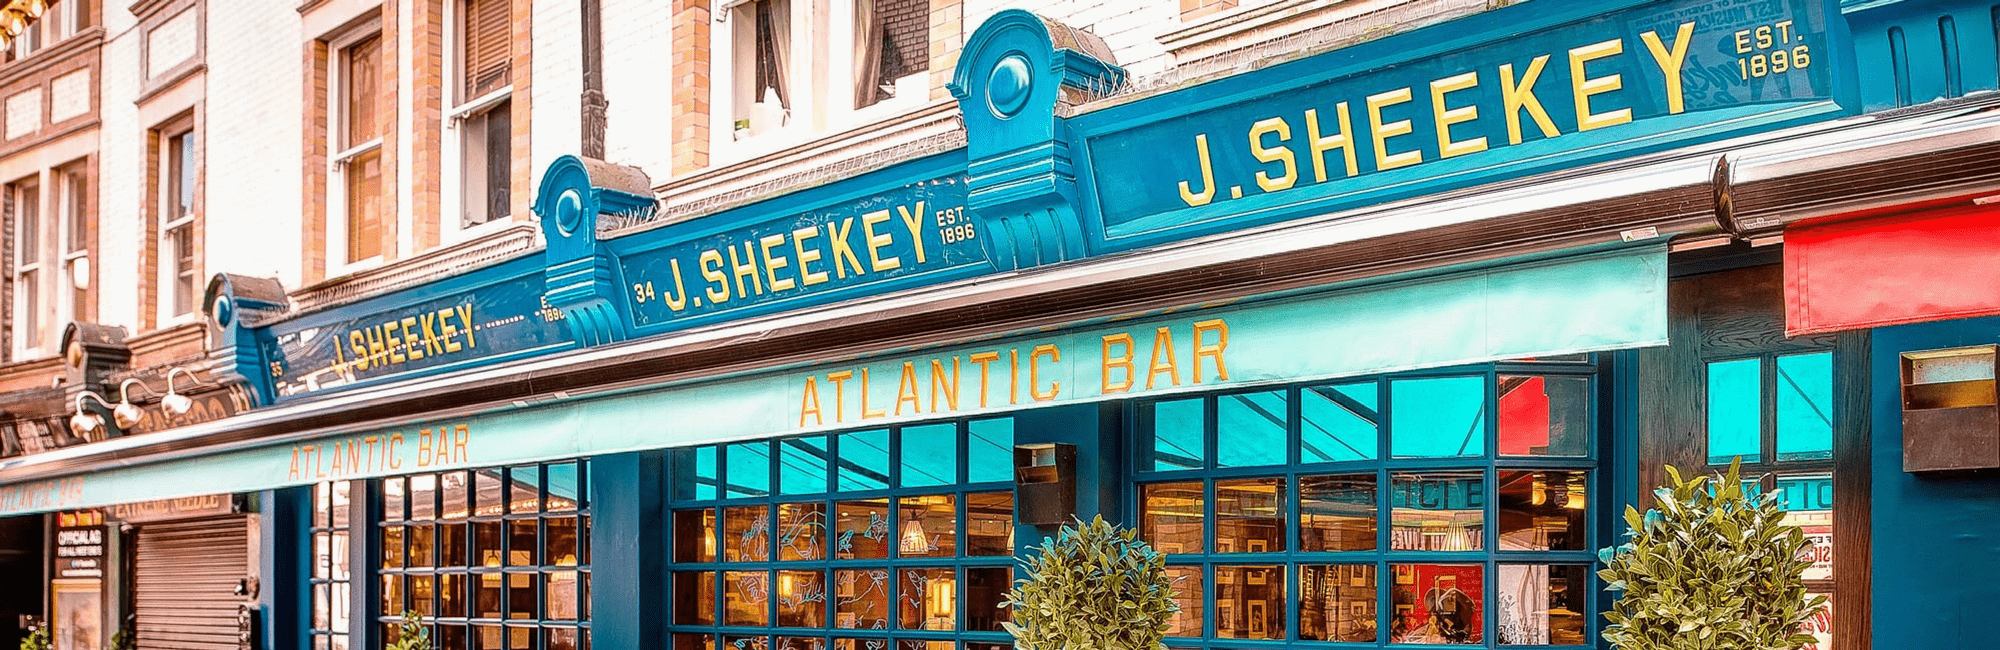 J Sheekey Atlantic Bar is a small plate fish and seafood restaurant located in the heart of London's West End open for lunch and dinner